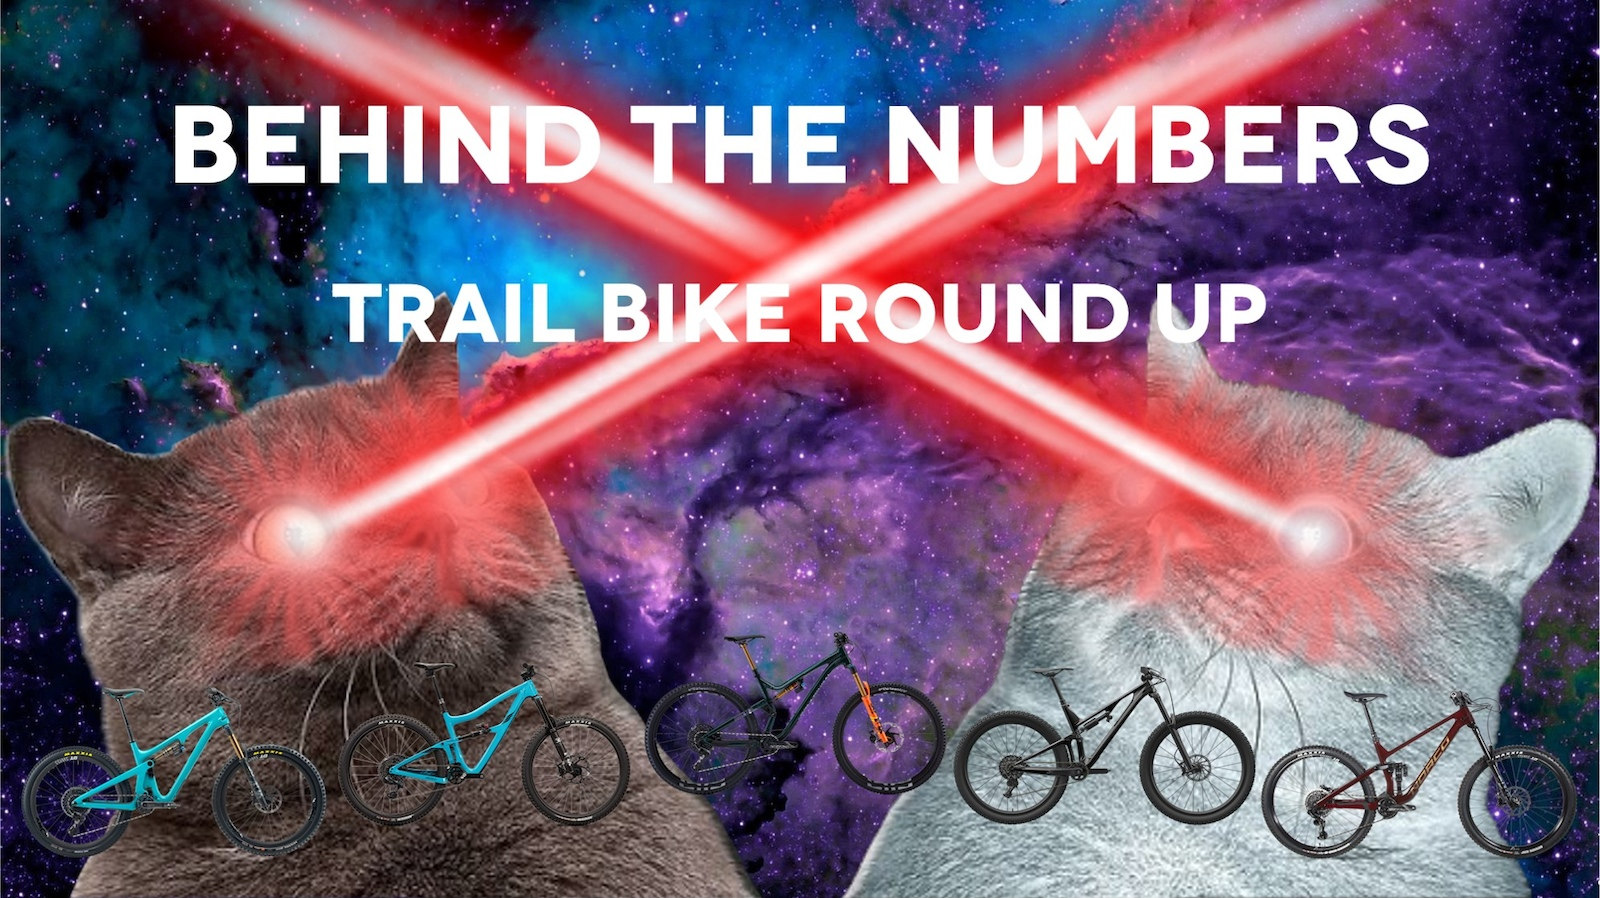 Behind the Numbers Trail Bike Round Up